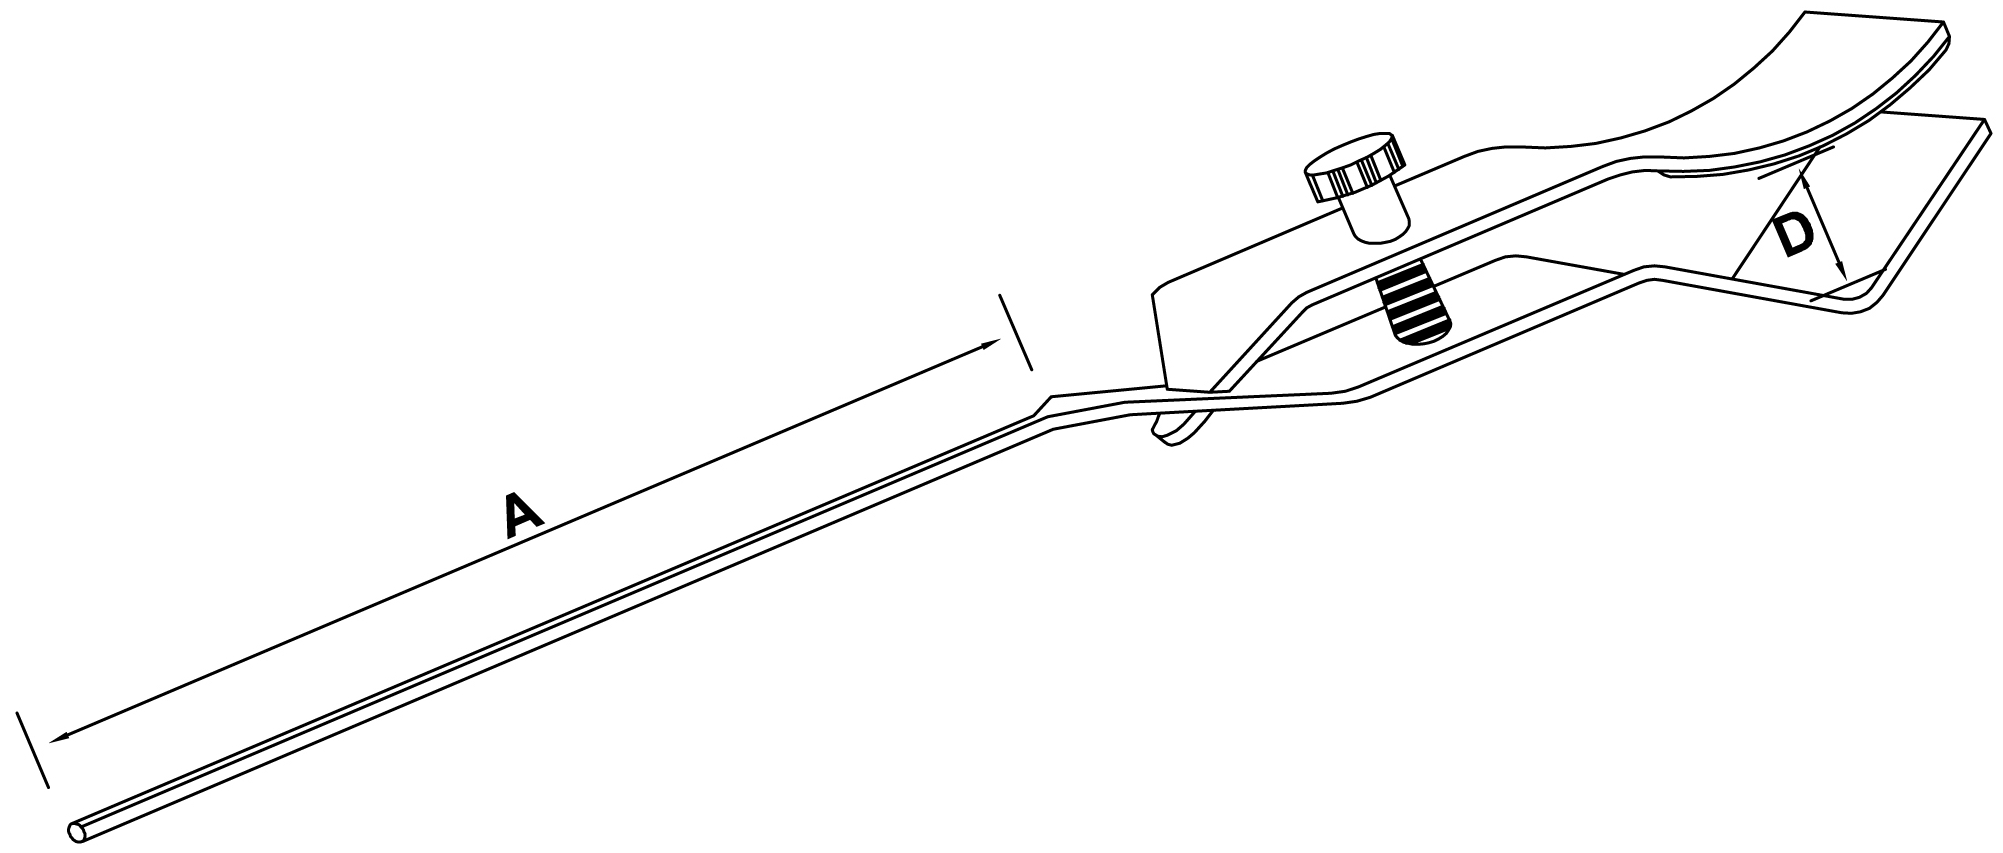 small flask clamp - schemat